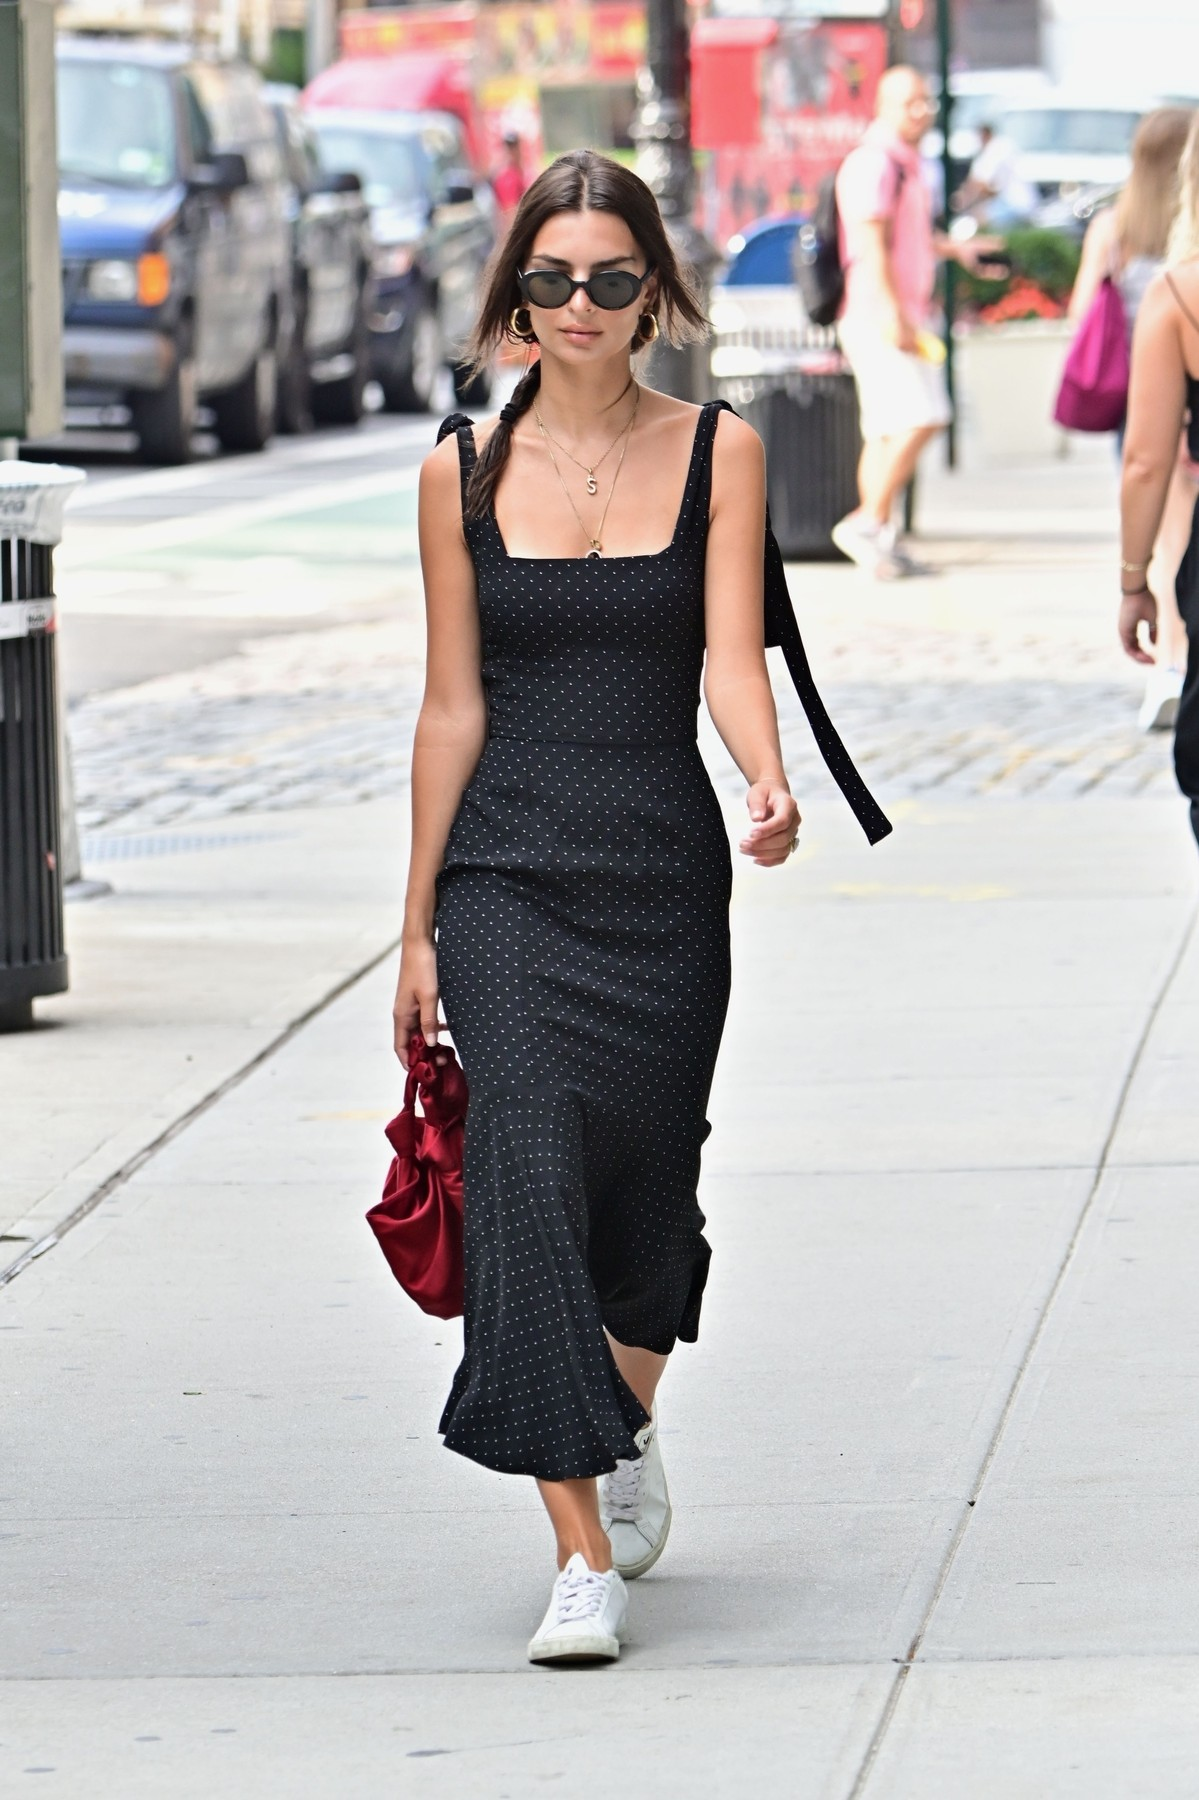 New York, NY  - Model, Emily Ratajkowski looks stylish in a black polka dot dress as she runs her early morning errands in New York. Emily is seen wearing a necklace with an 'S' pendant to represent her love for husband Sebastian Bear-McClard.  BACKGRID USA 19 AUGUST 2019, Image: 466117023, License: Rights-managed, Restrictions: RIGHTS: WORLDWIDE EXCEPT IN FRANCE, GERMANY, POLAND, Model Release: no, Credit line: Profimedia, Backgrid USA